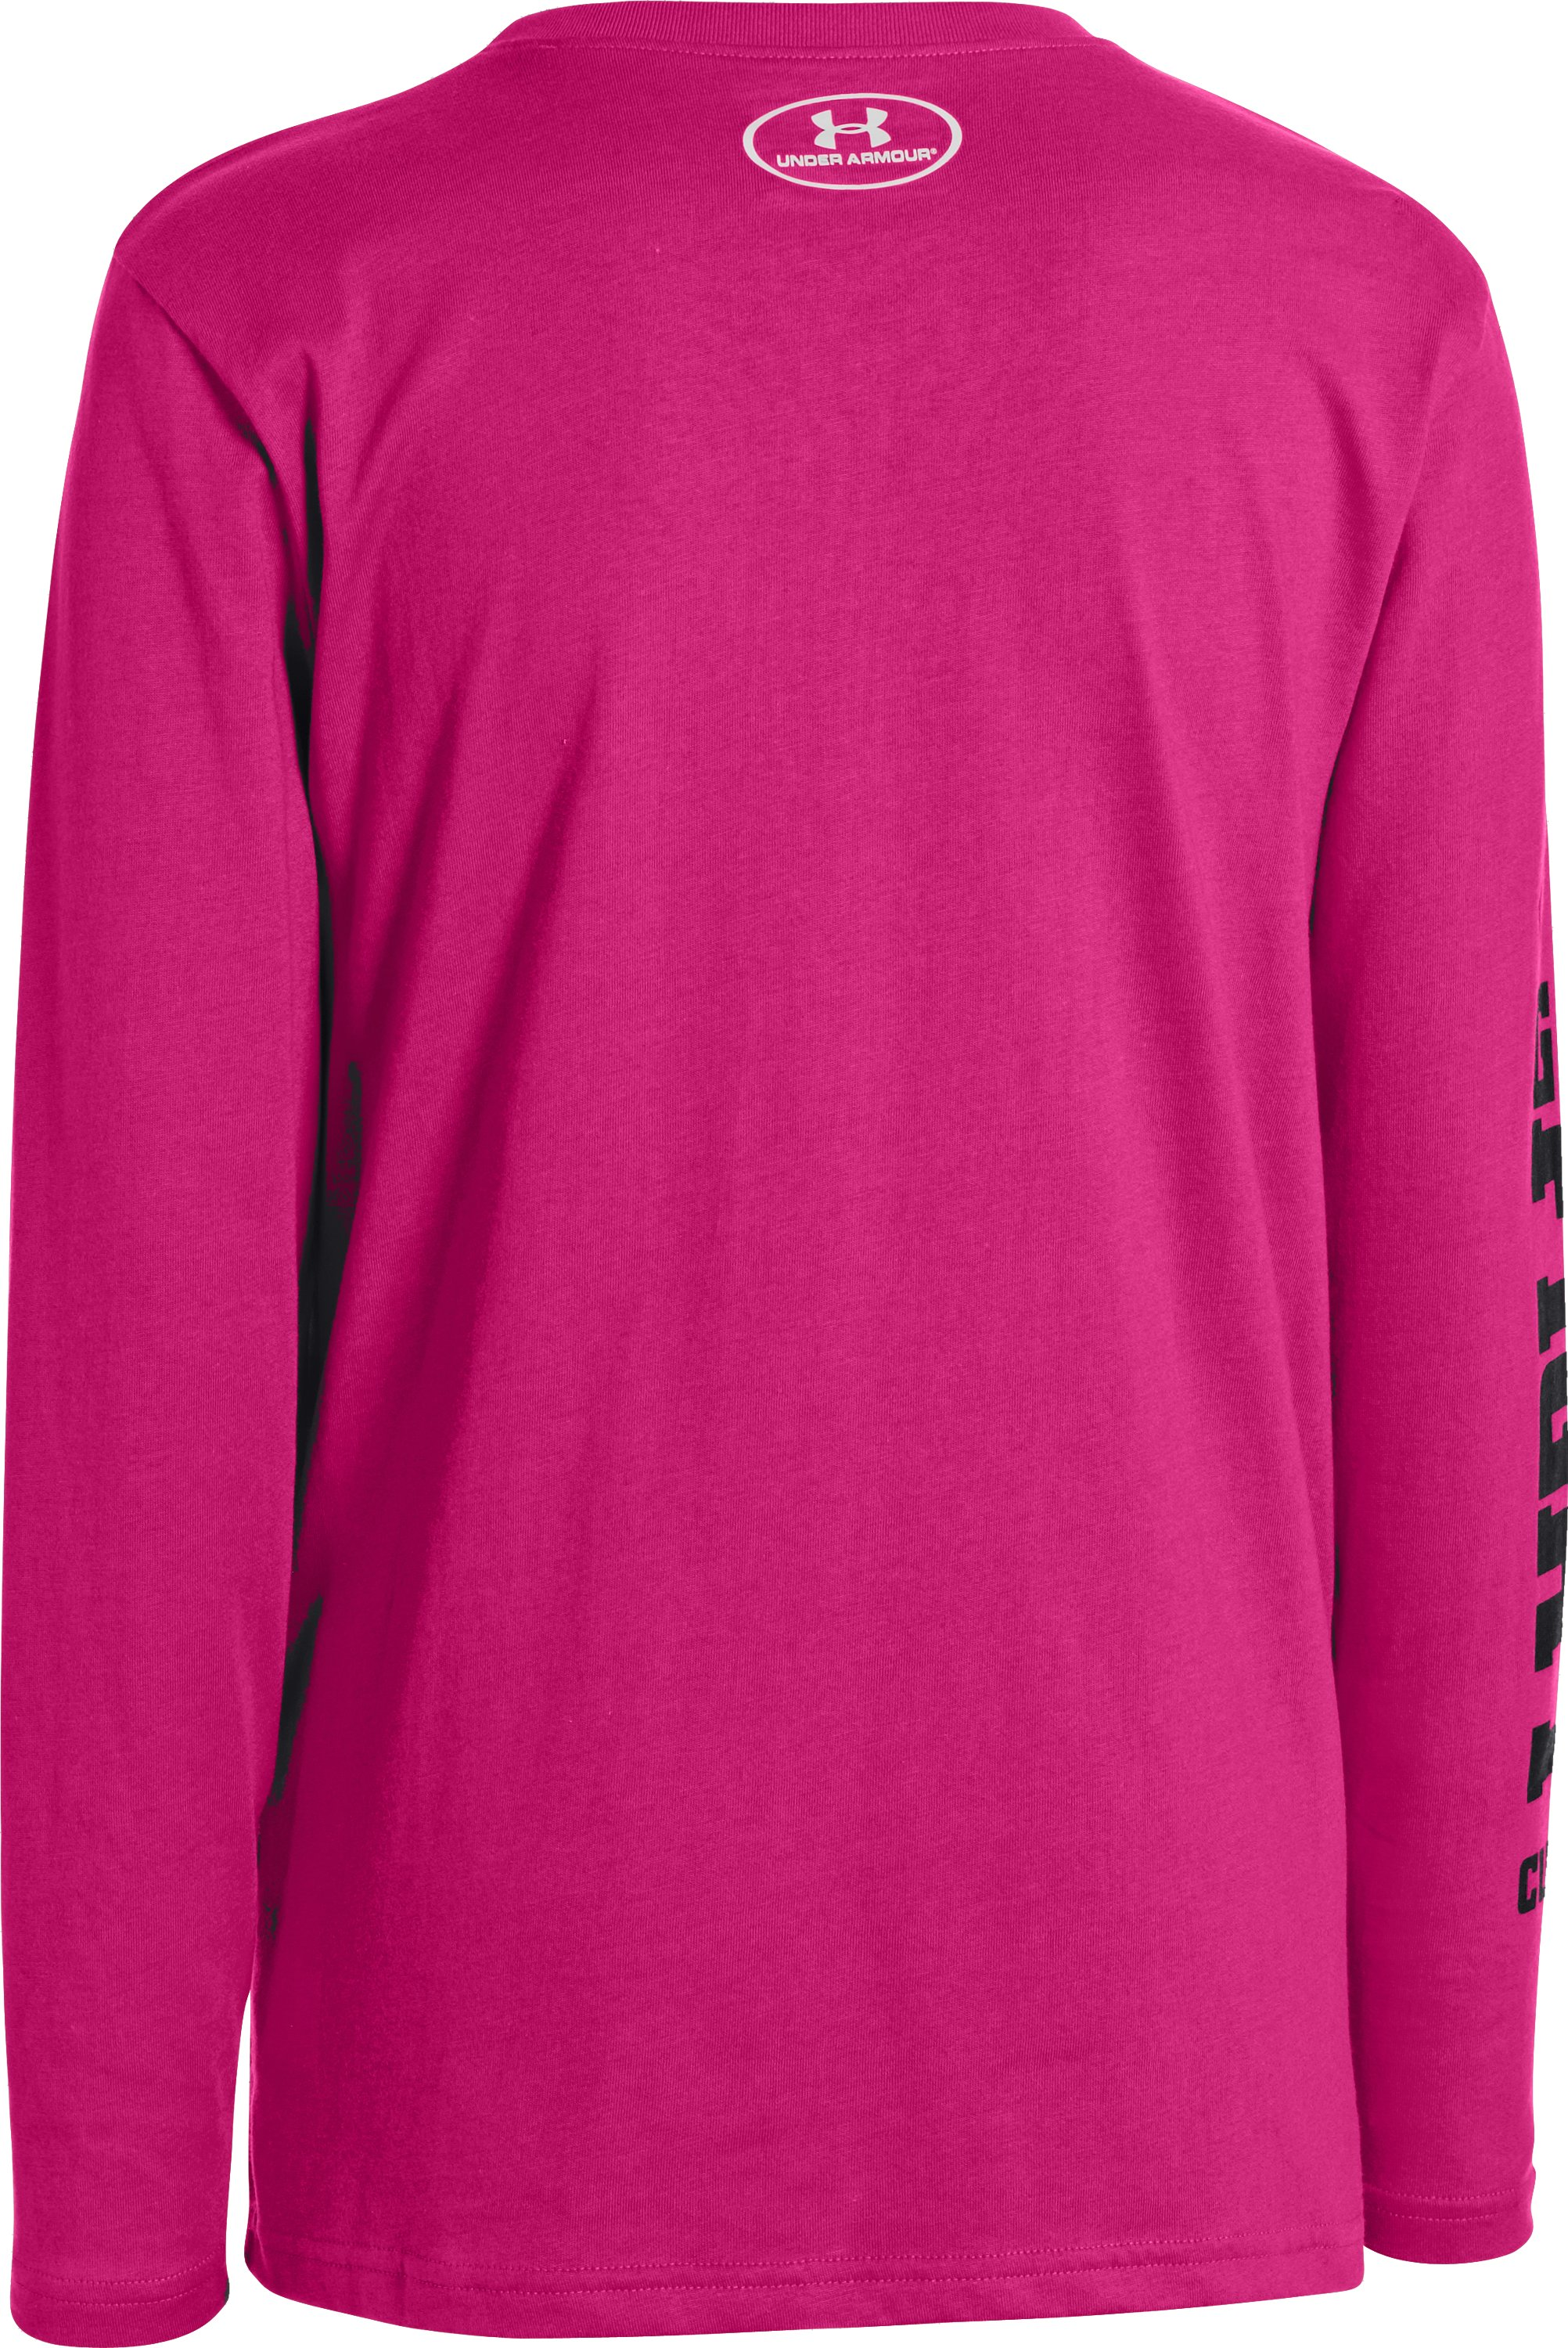 Boys' UA Go Fight Cure PIP® Long Sleeve T-Shirt, Tropic Pink